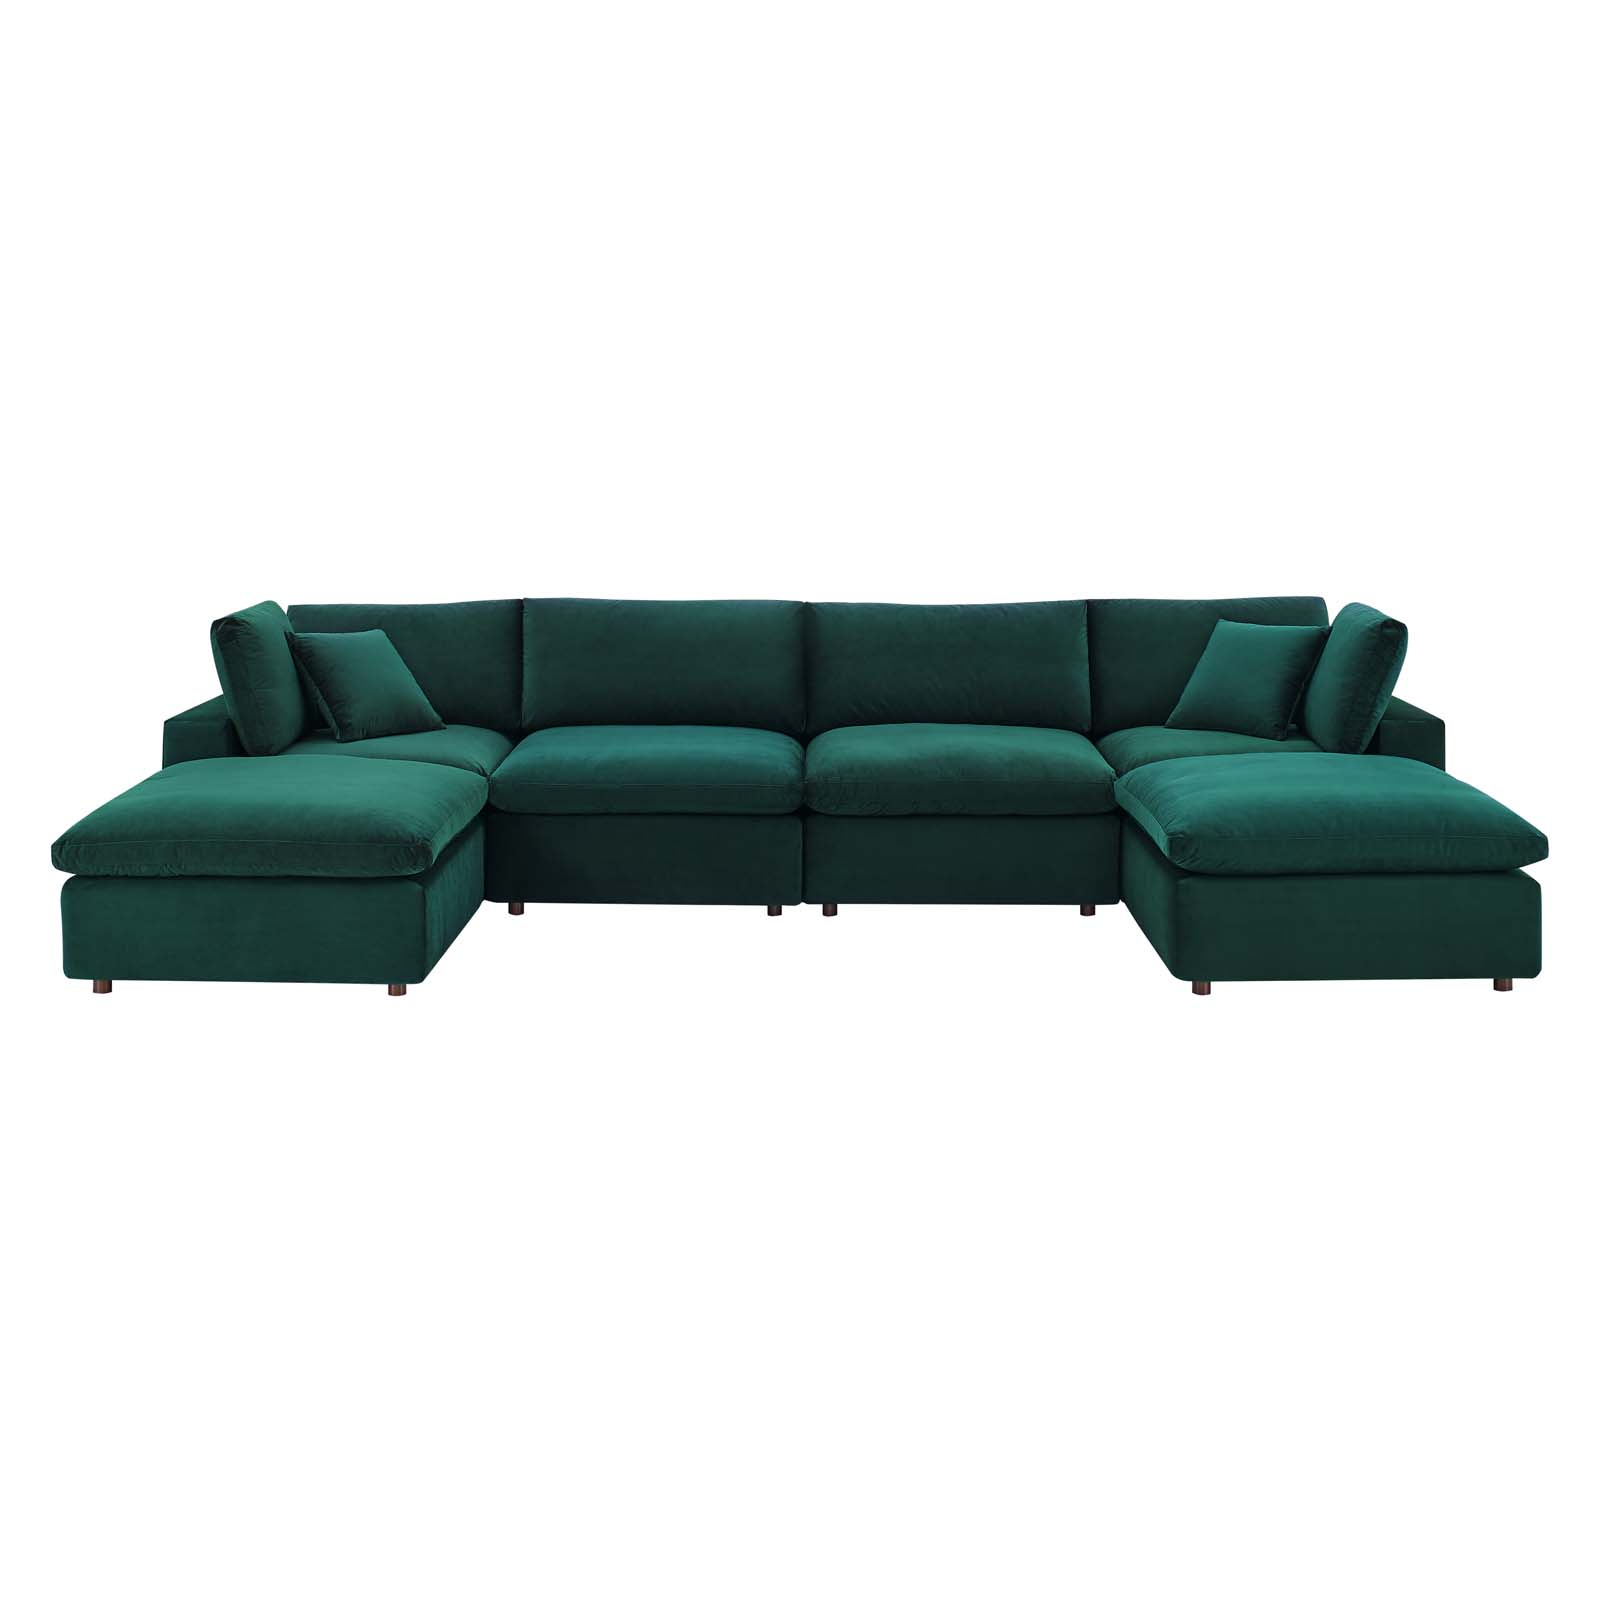 Commix Down Filled Overstuffed Performance Velvet 6 Piece Regarding Down Filled Sectional Sofas (View 3 of 15)